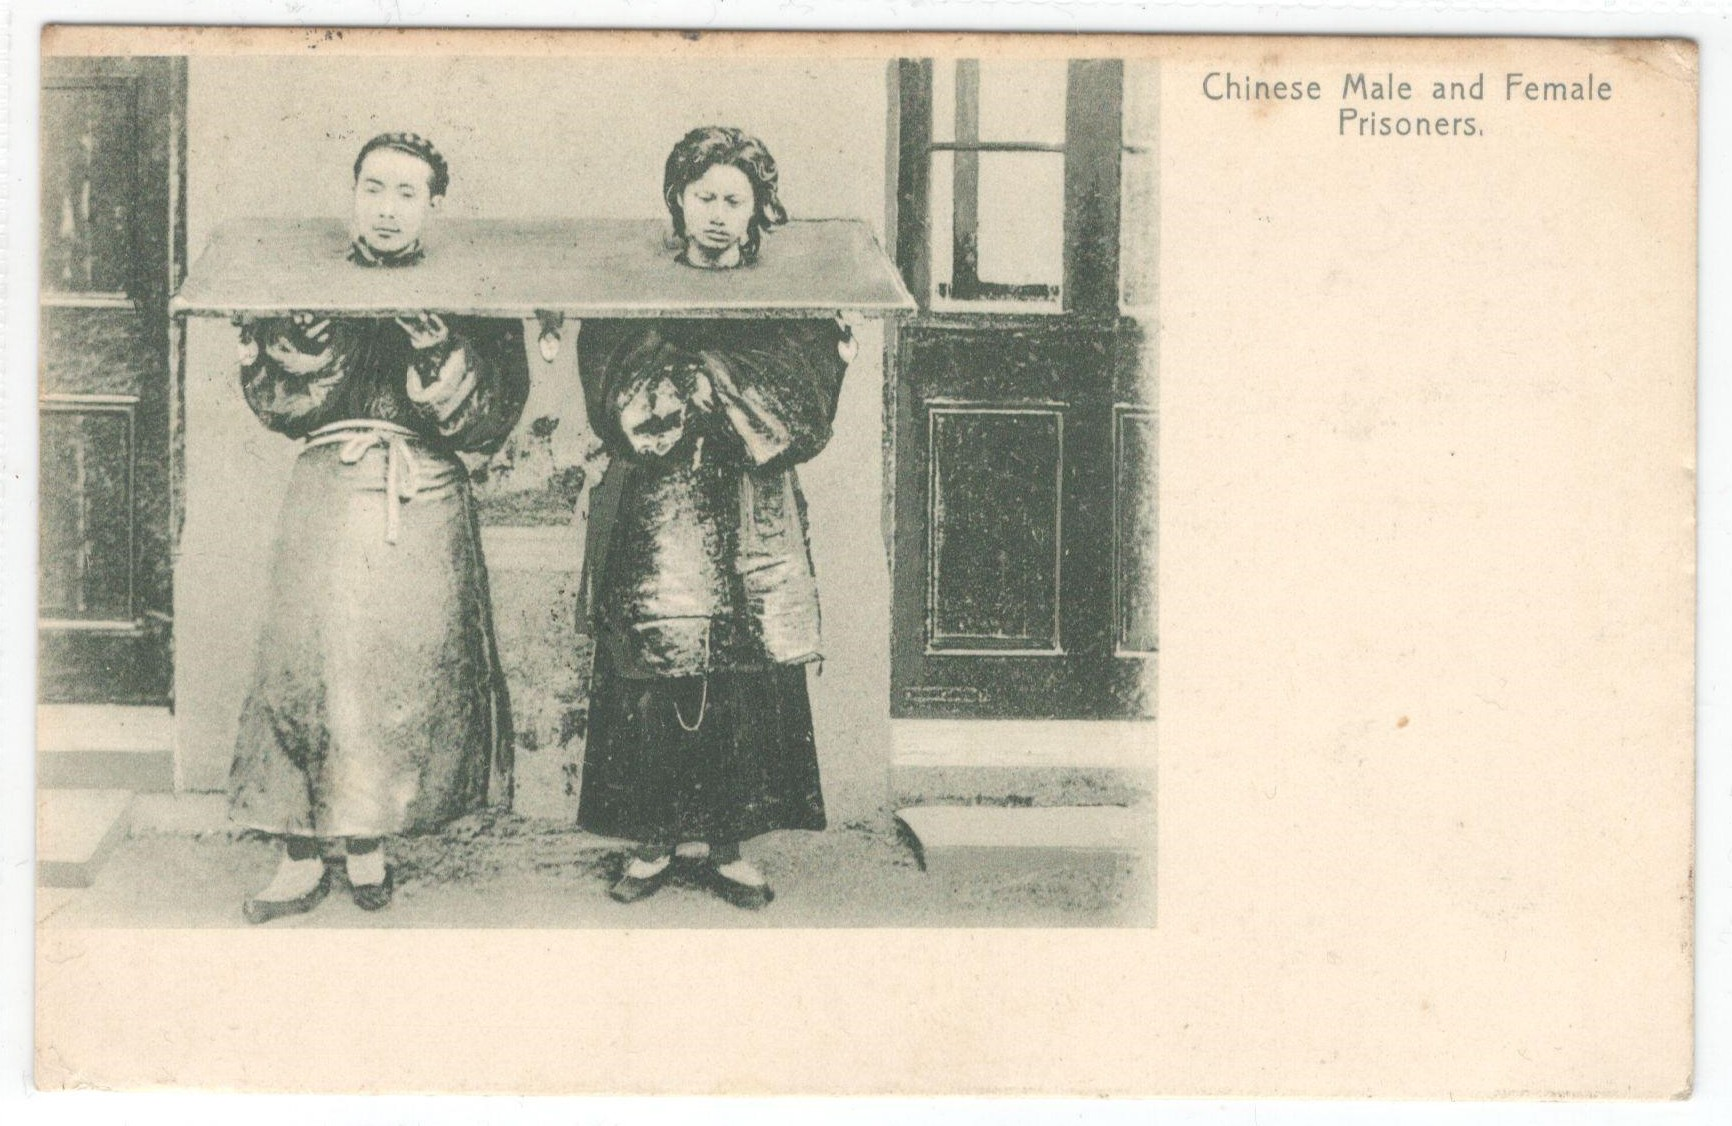 Lot 4 - CHINESE MALE AND FEMALE PRISONERS - POSTED POSTCARD TEMPORARY P.O. CHOWRASTA 1908